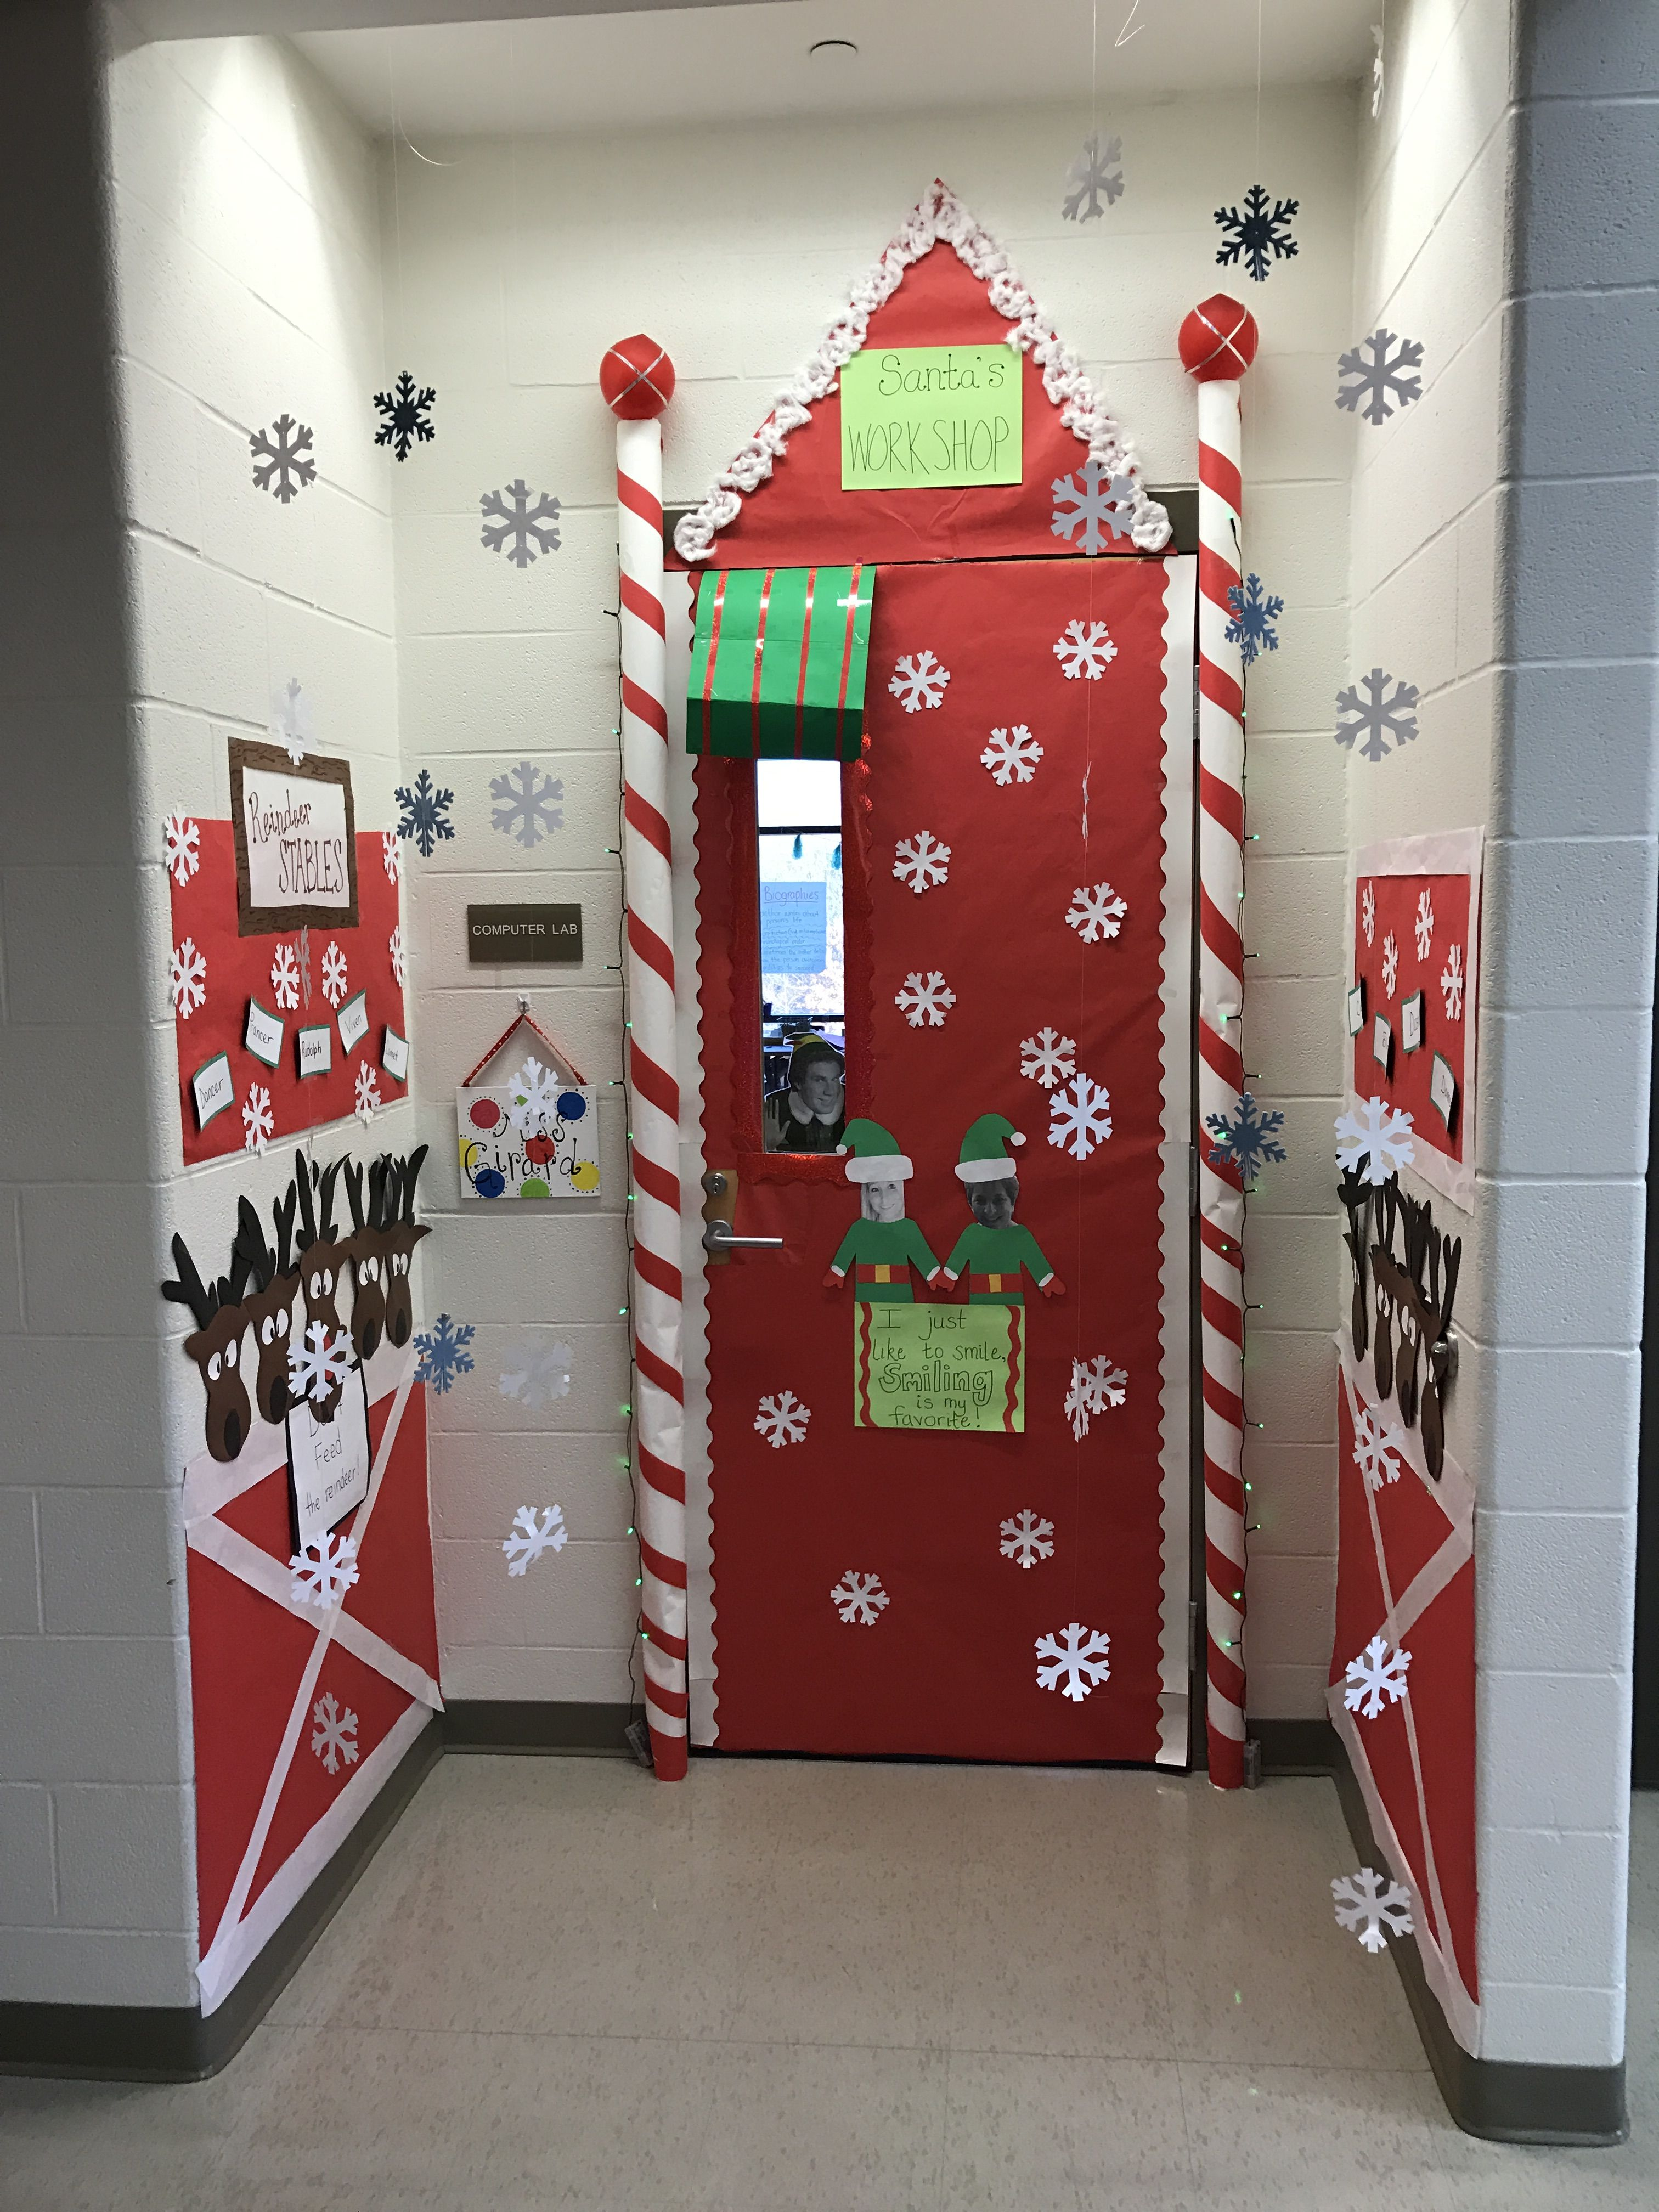 Christmas Classroom Door Decorations-Santa's Workshop